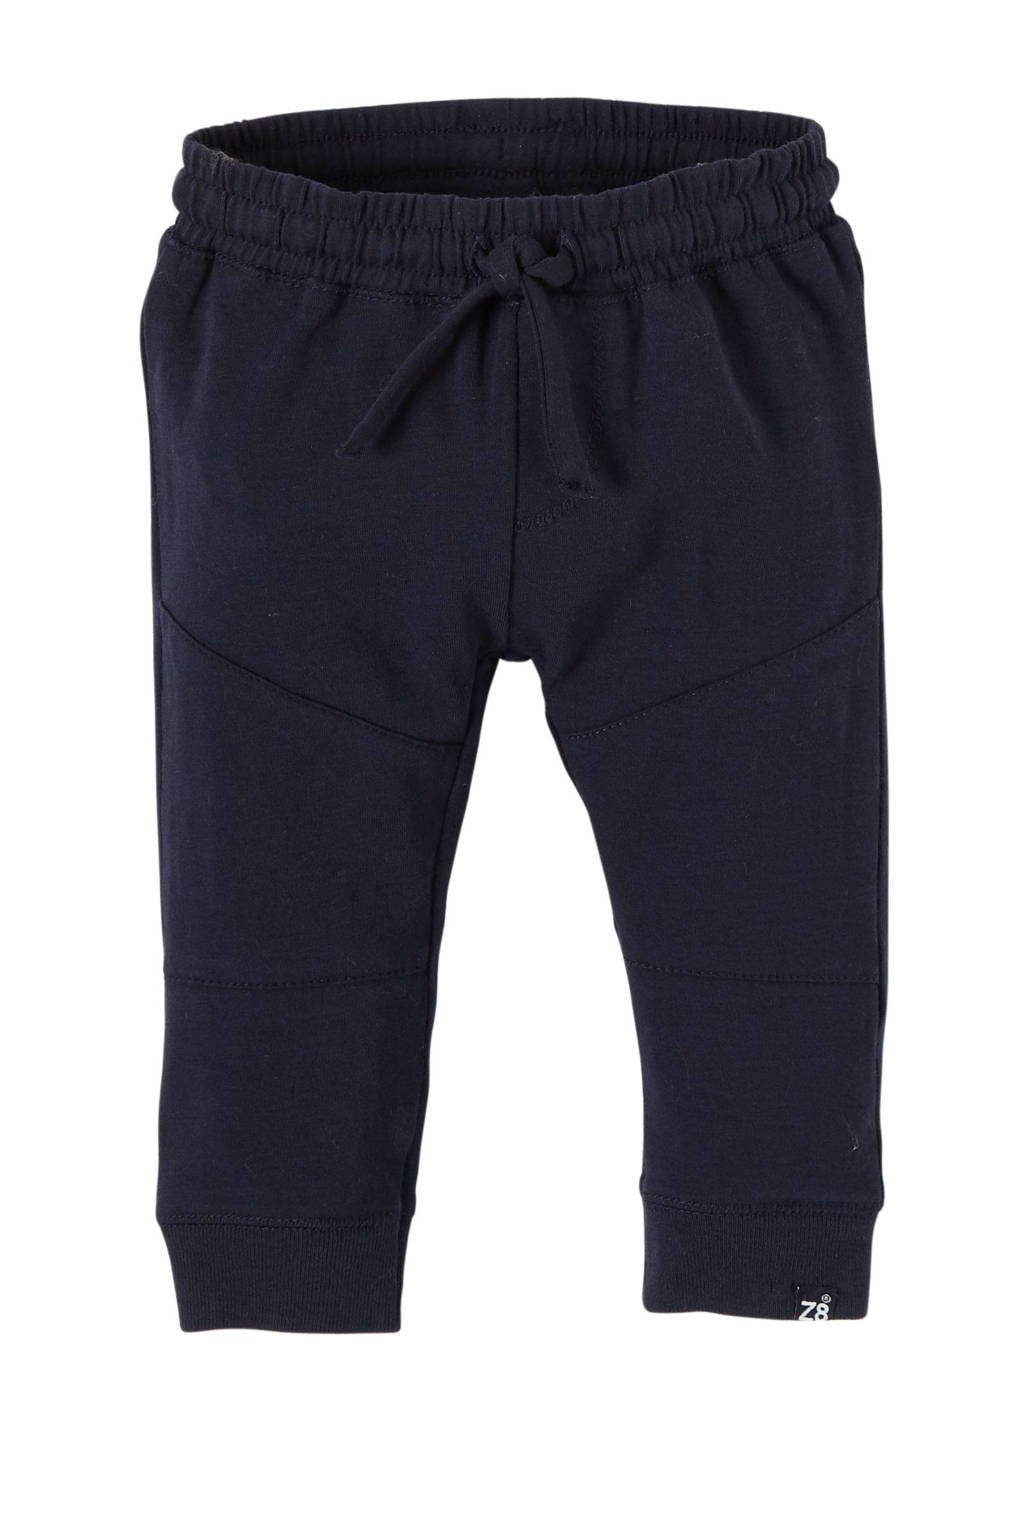 Z8   joggingbroek, Marine